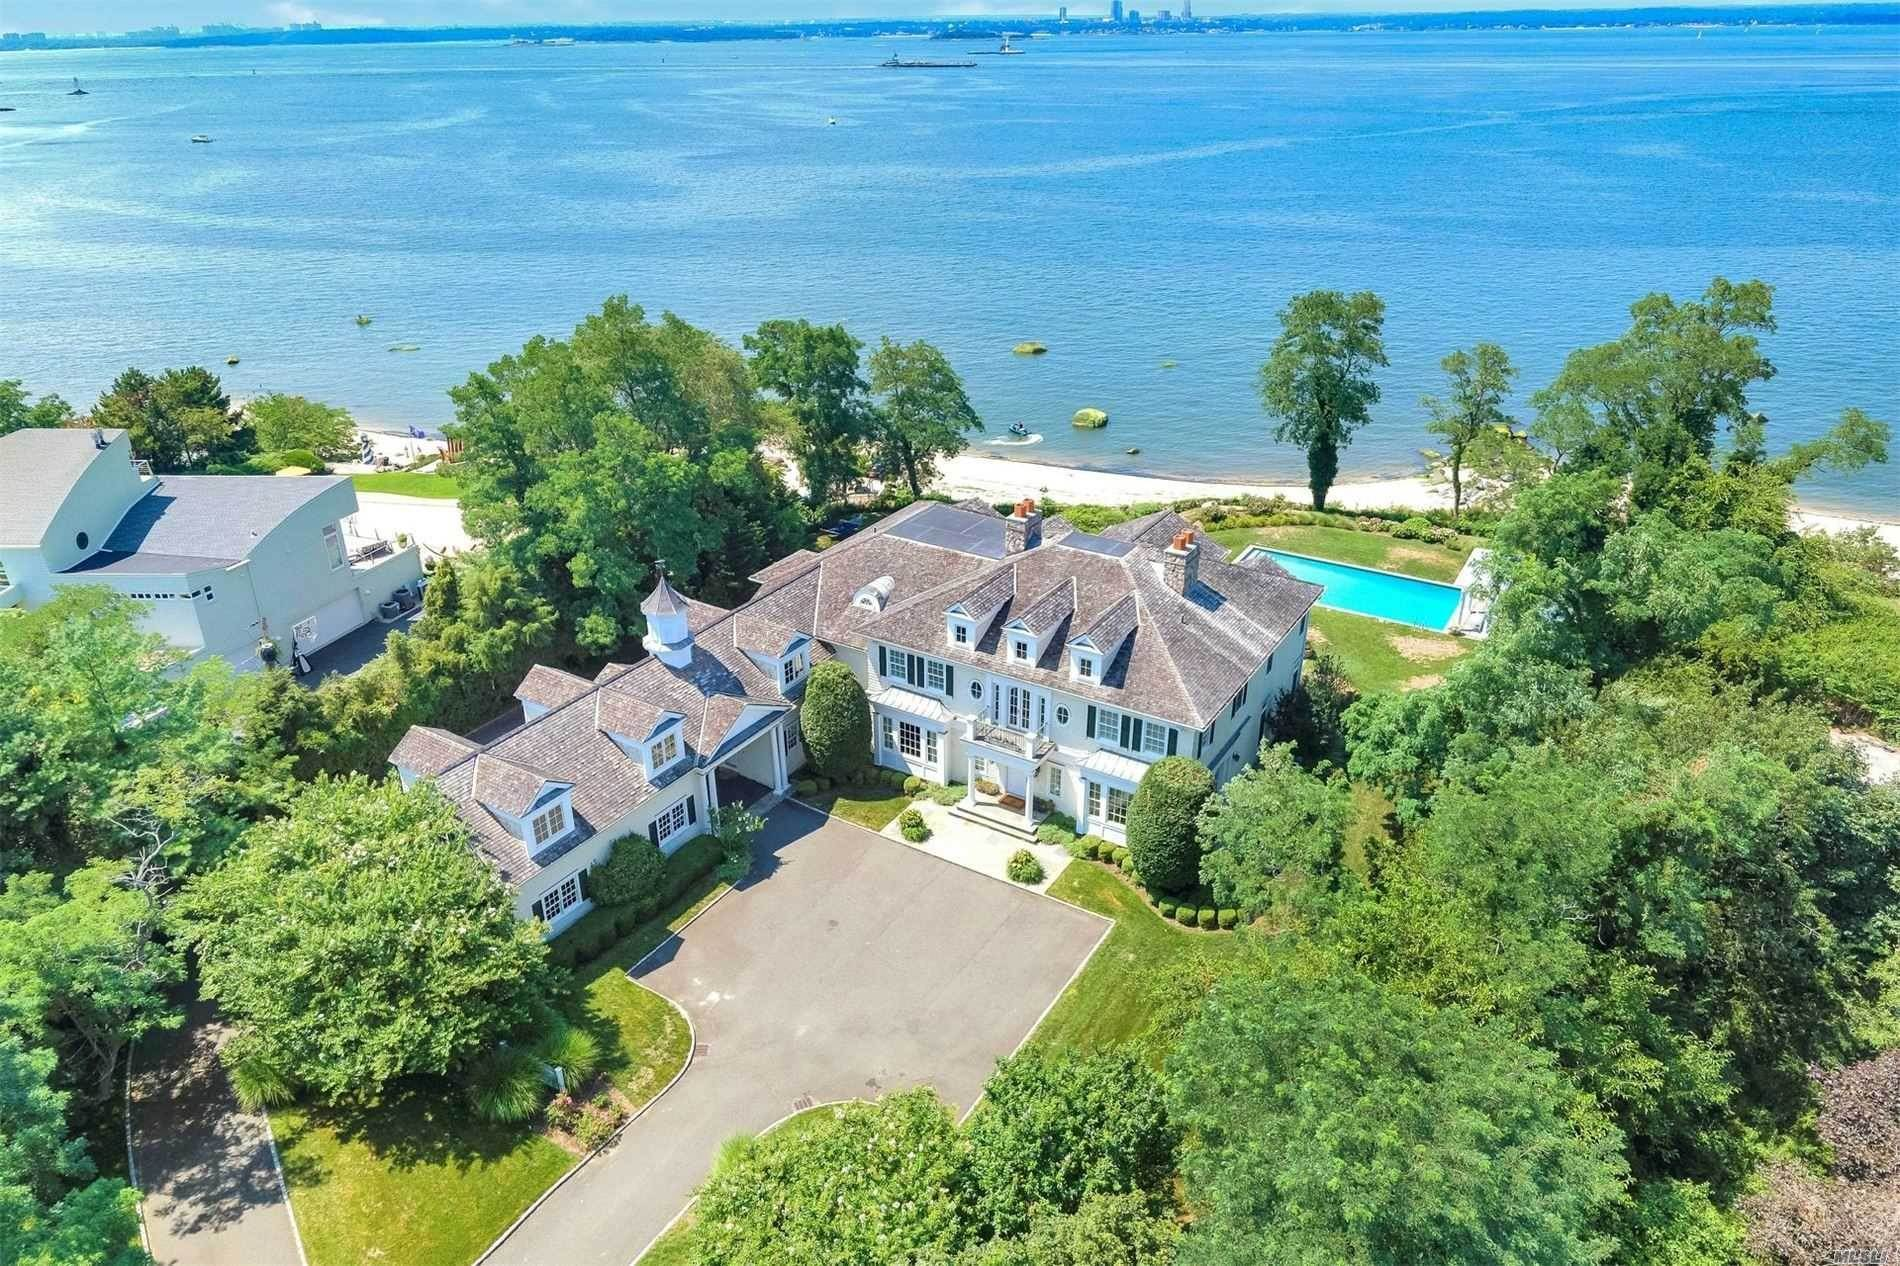 Residential for Sale at 26 Hoffstot Lane, Sands Point, NY 11050 Sands Point, New York 11050 United States